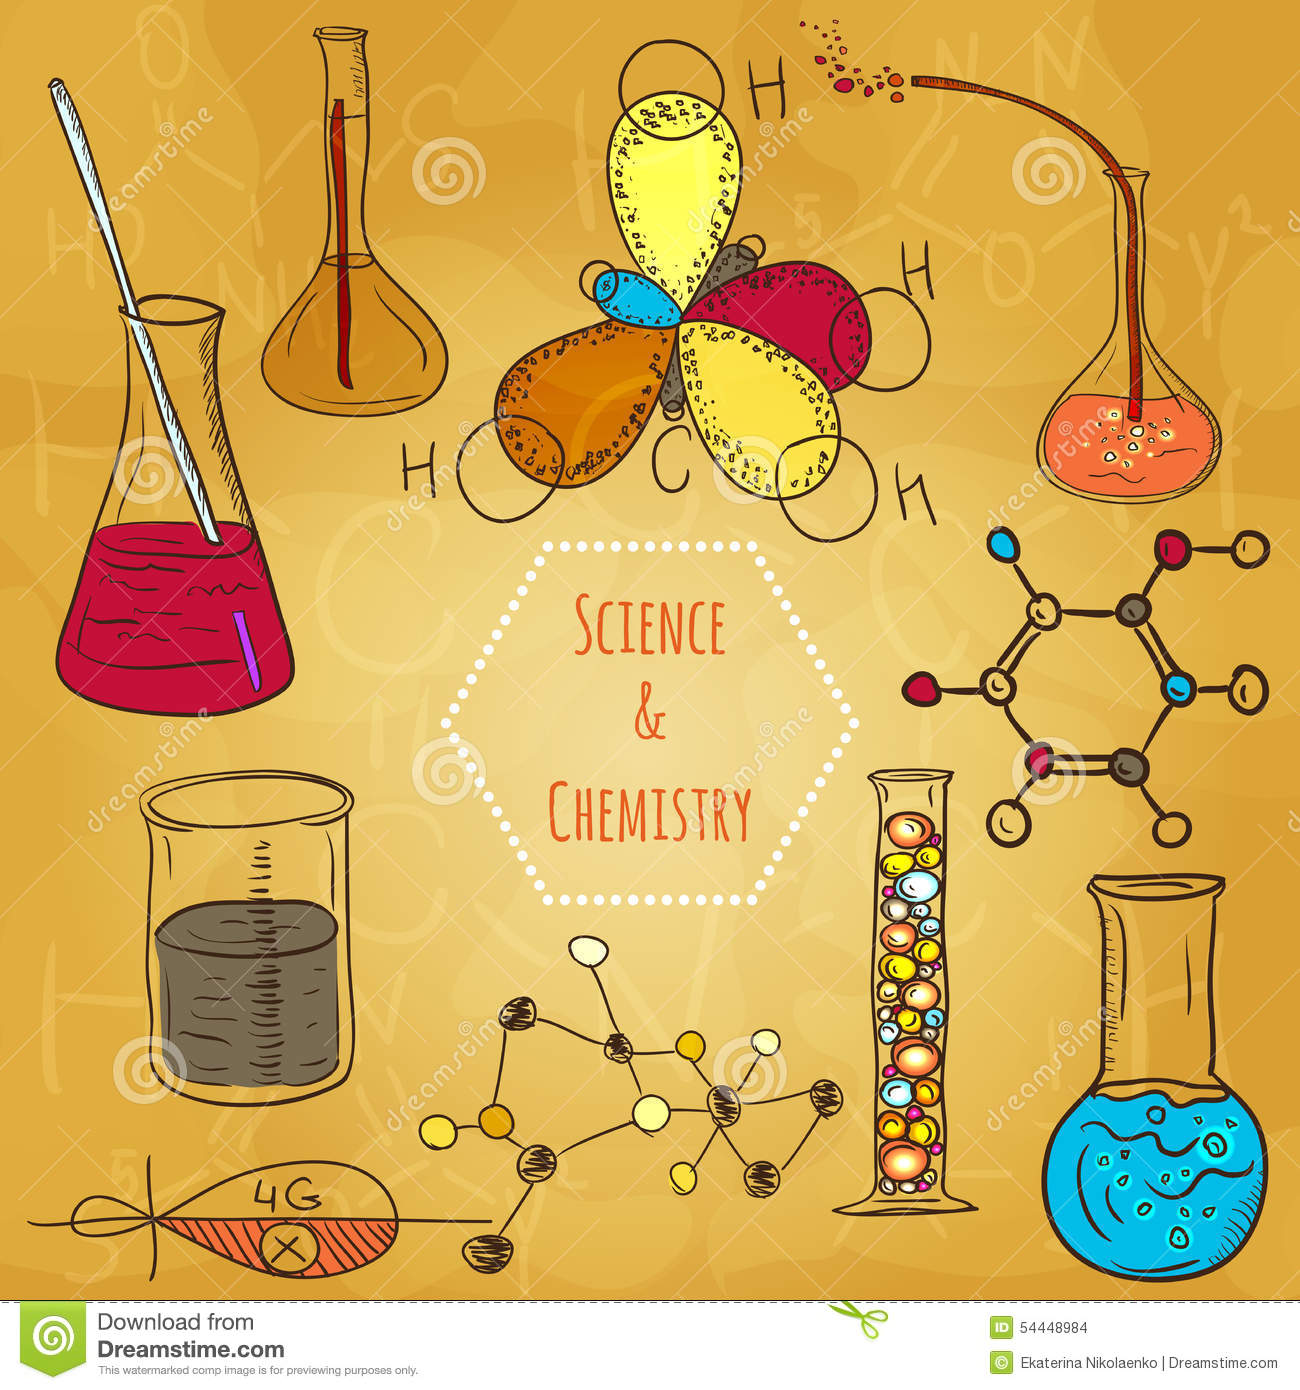 Science Design For Notebook: Science Chemistry Laboratory Vector Background Sketchy